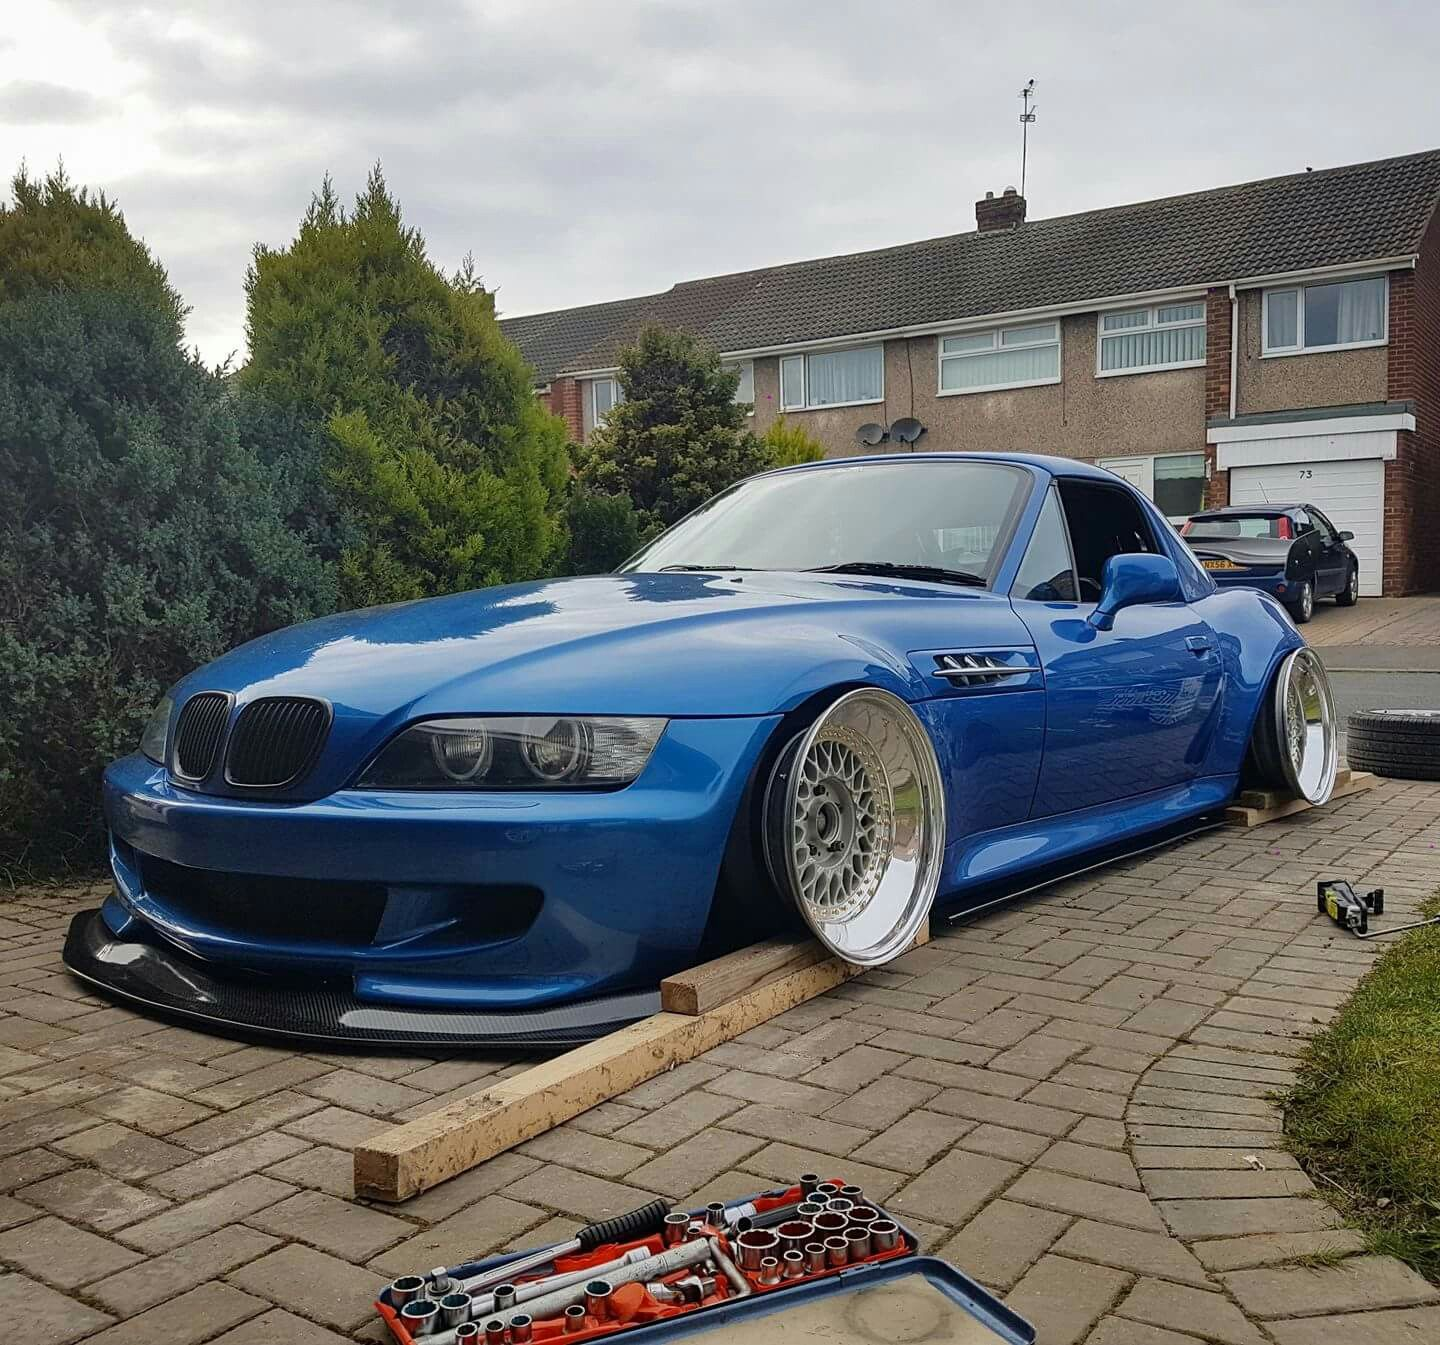 Bmw Z3 Drift Car: BMW Z3 M Roadster Blue Slammed